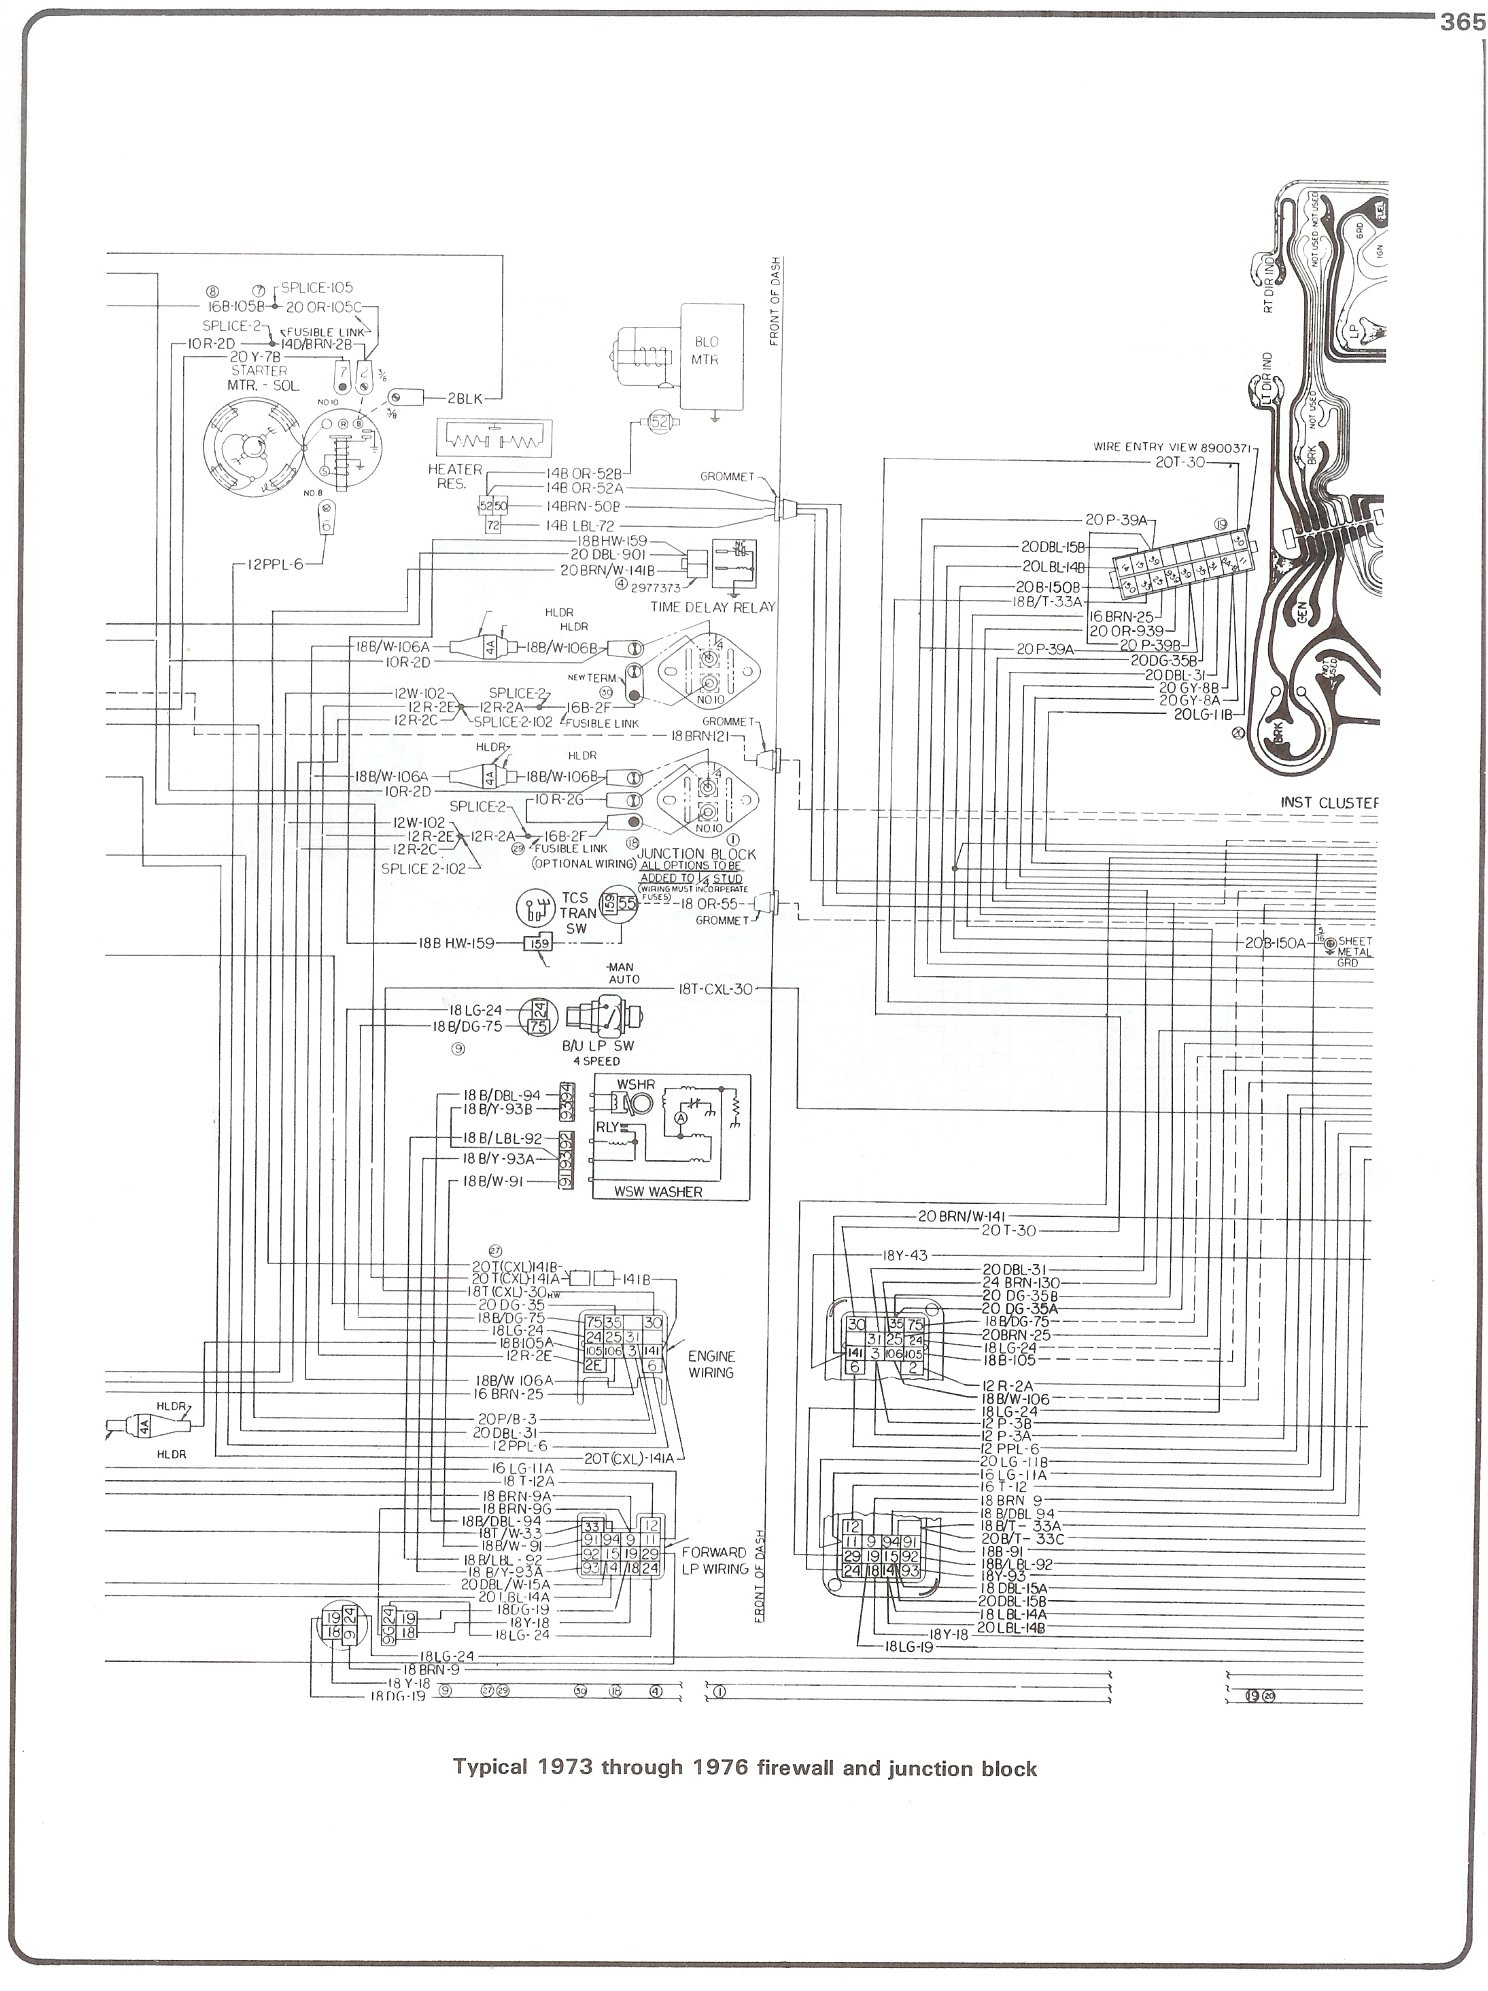 79 Chevy Distributor Diagram Circuit Symbols Hei Wiring 1985 K10 Complete 73 87 Diagrams Rh Forum 87chevytrucks Com 1984